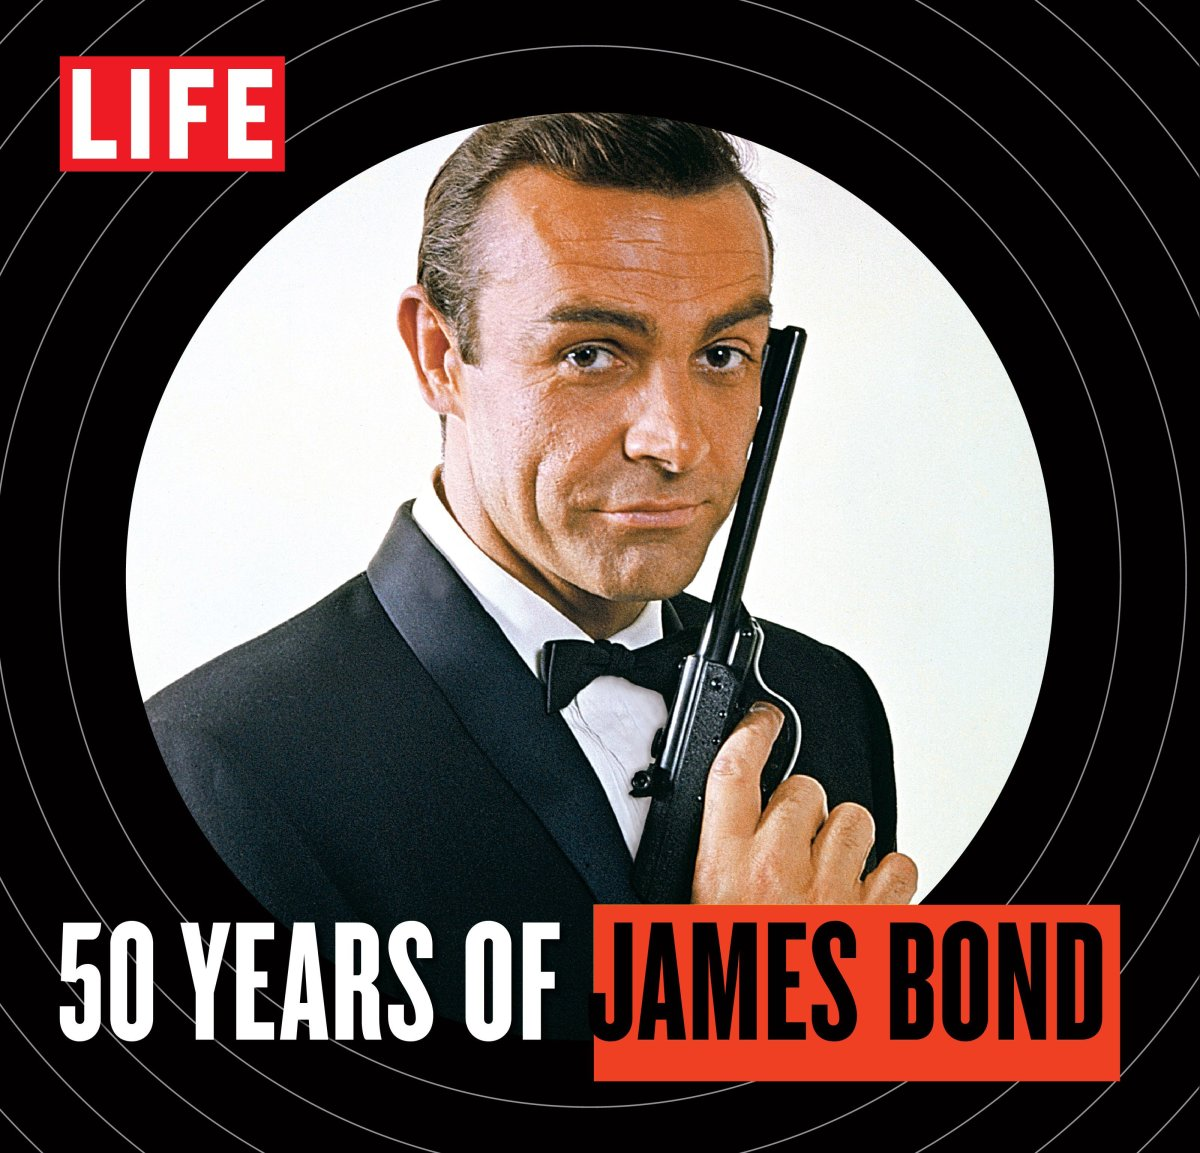 Bond films celebrated its 50th anniversary in 2012.